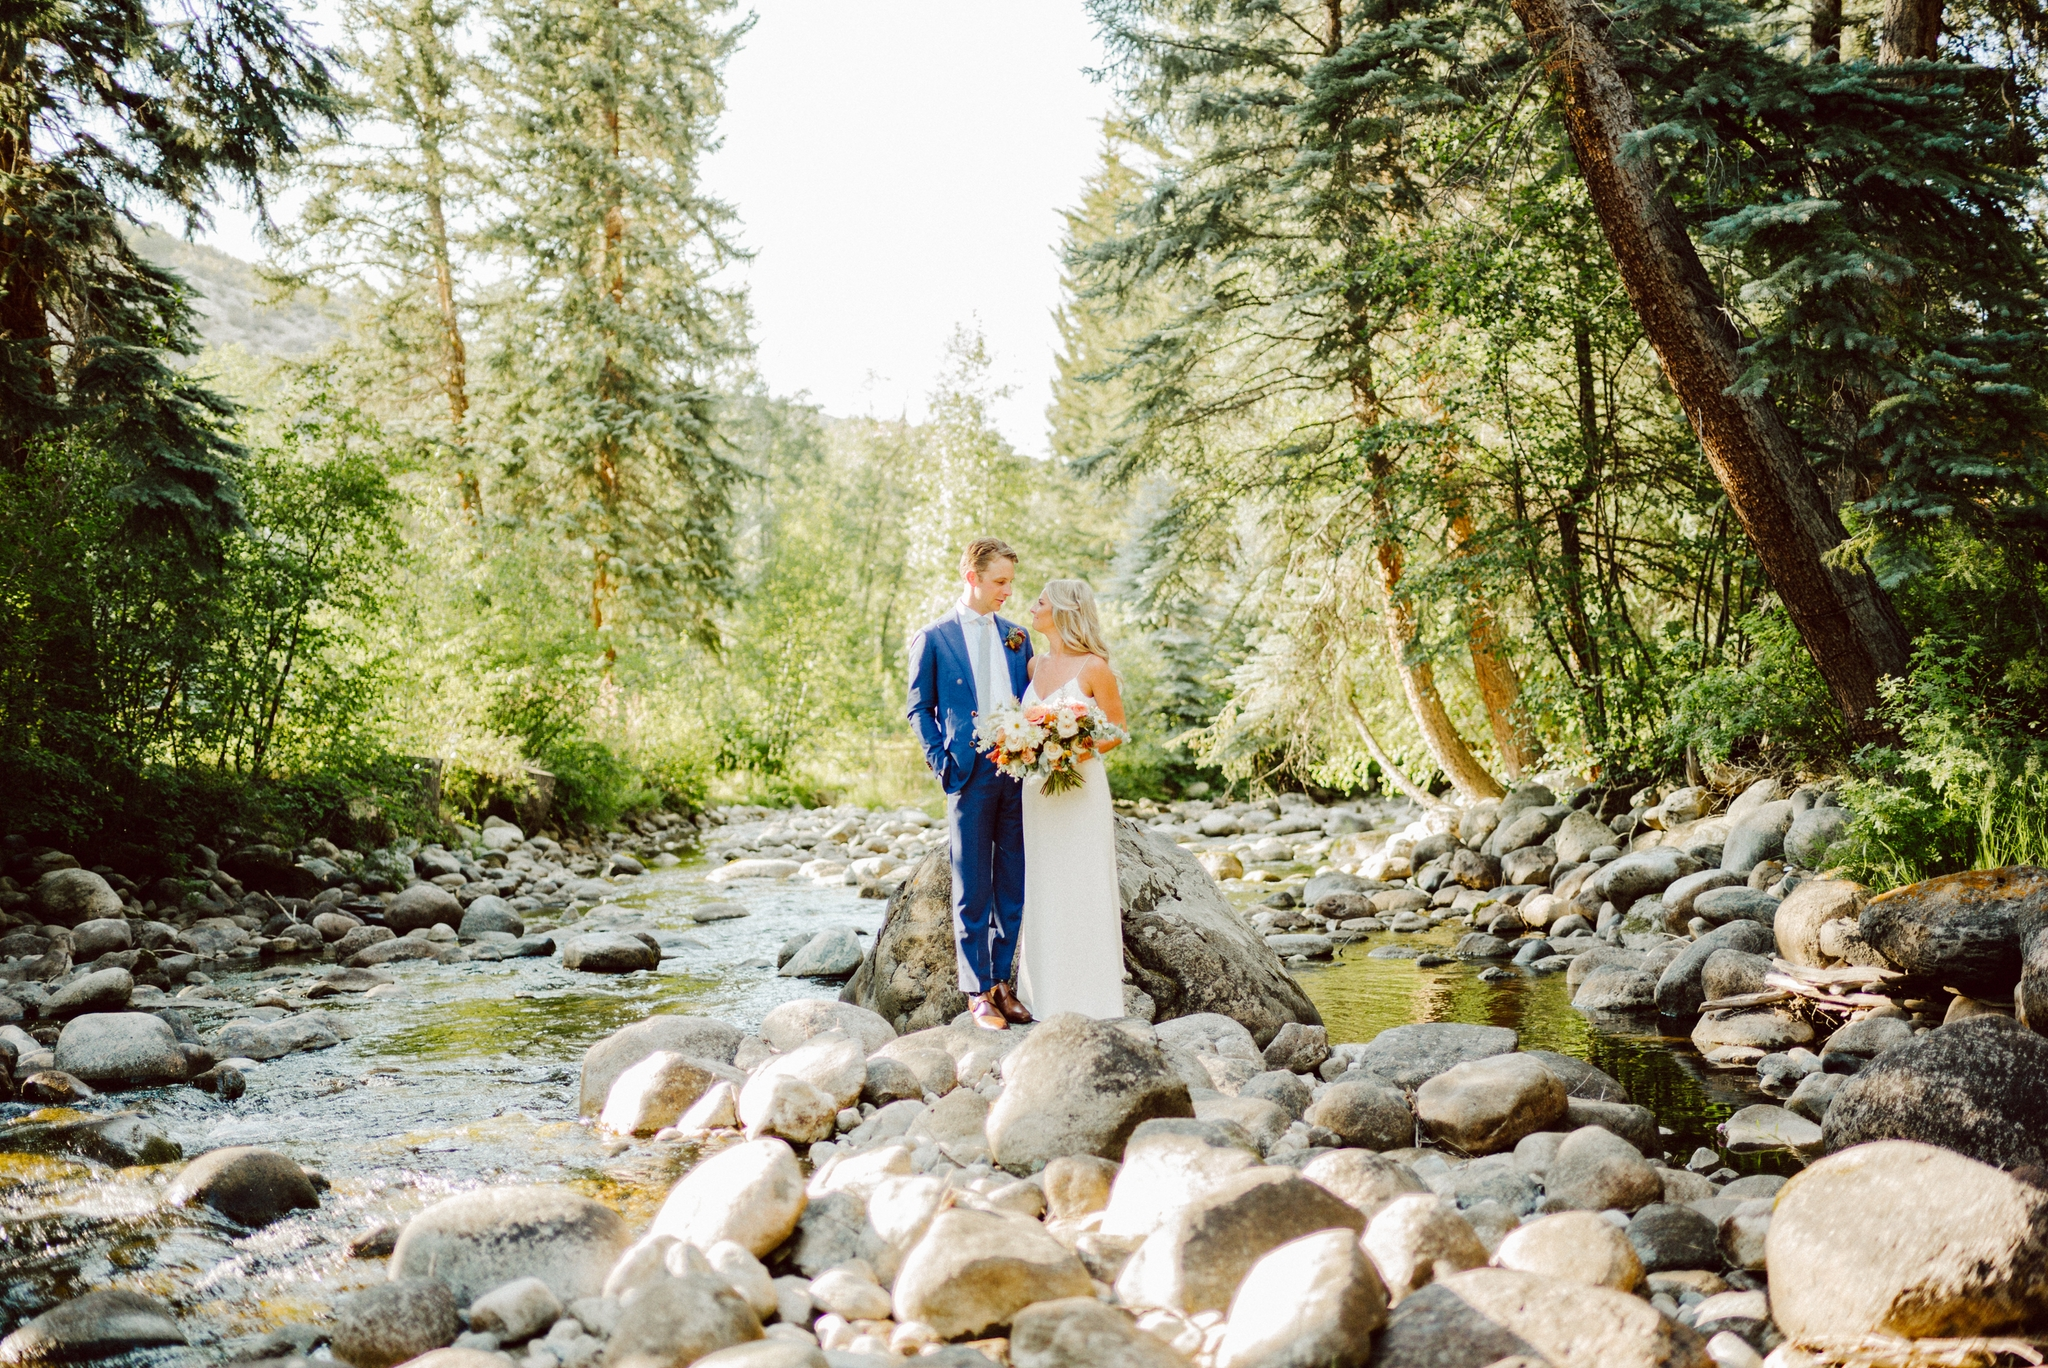 Erin and Jordan had a wedding at a family estate just outside Vail, Colorado with sailcloth tents, Topo Chico, and a live band!